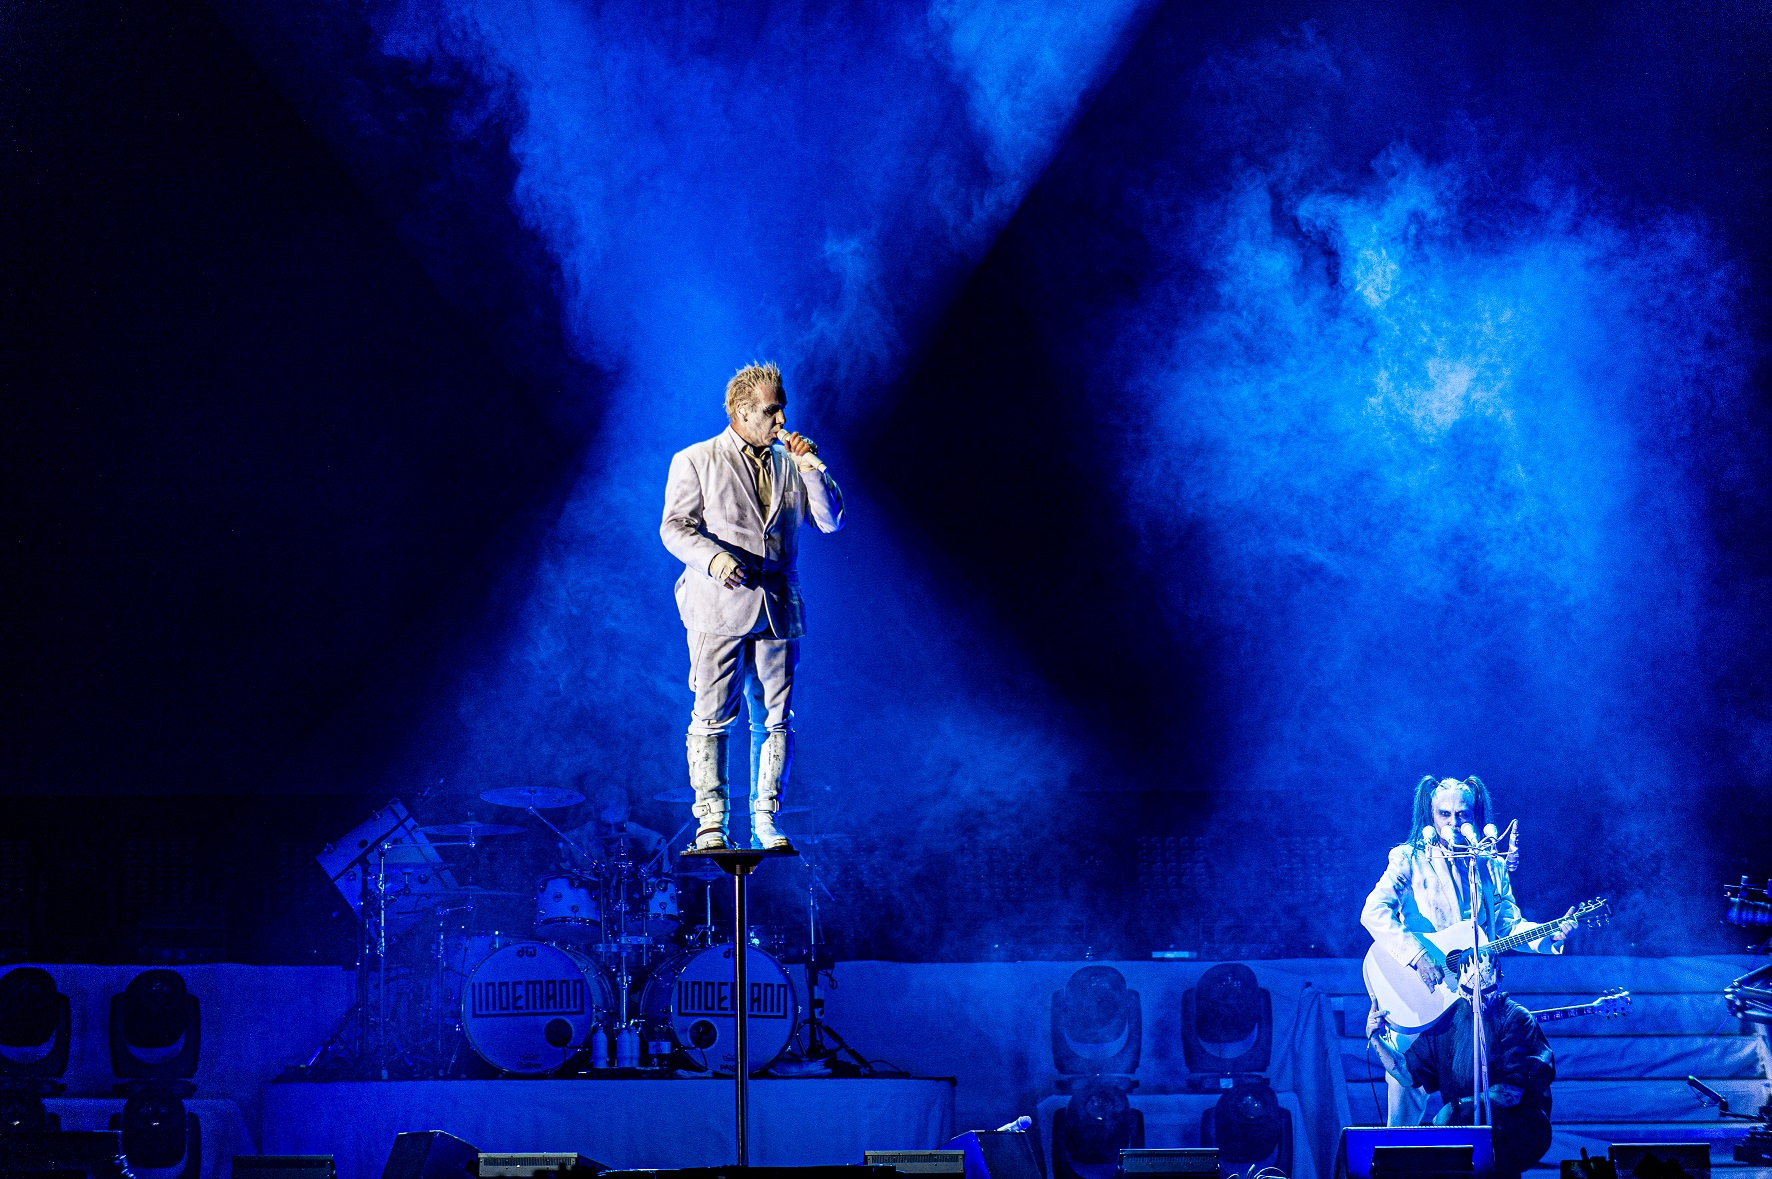 lindemann_live_in_moscow_image_1.jpg